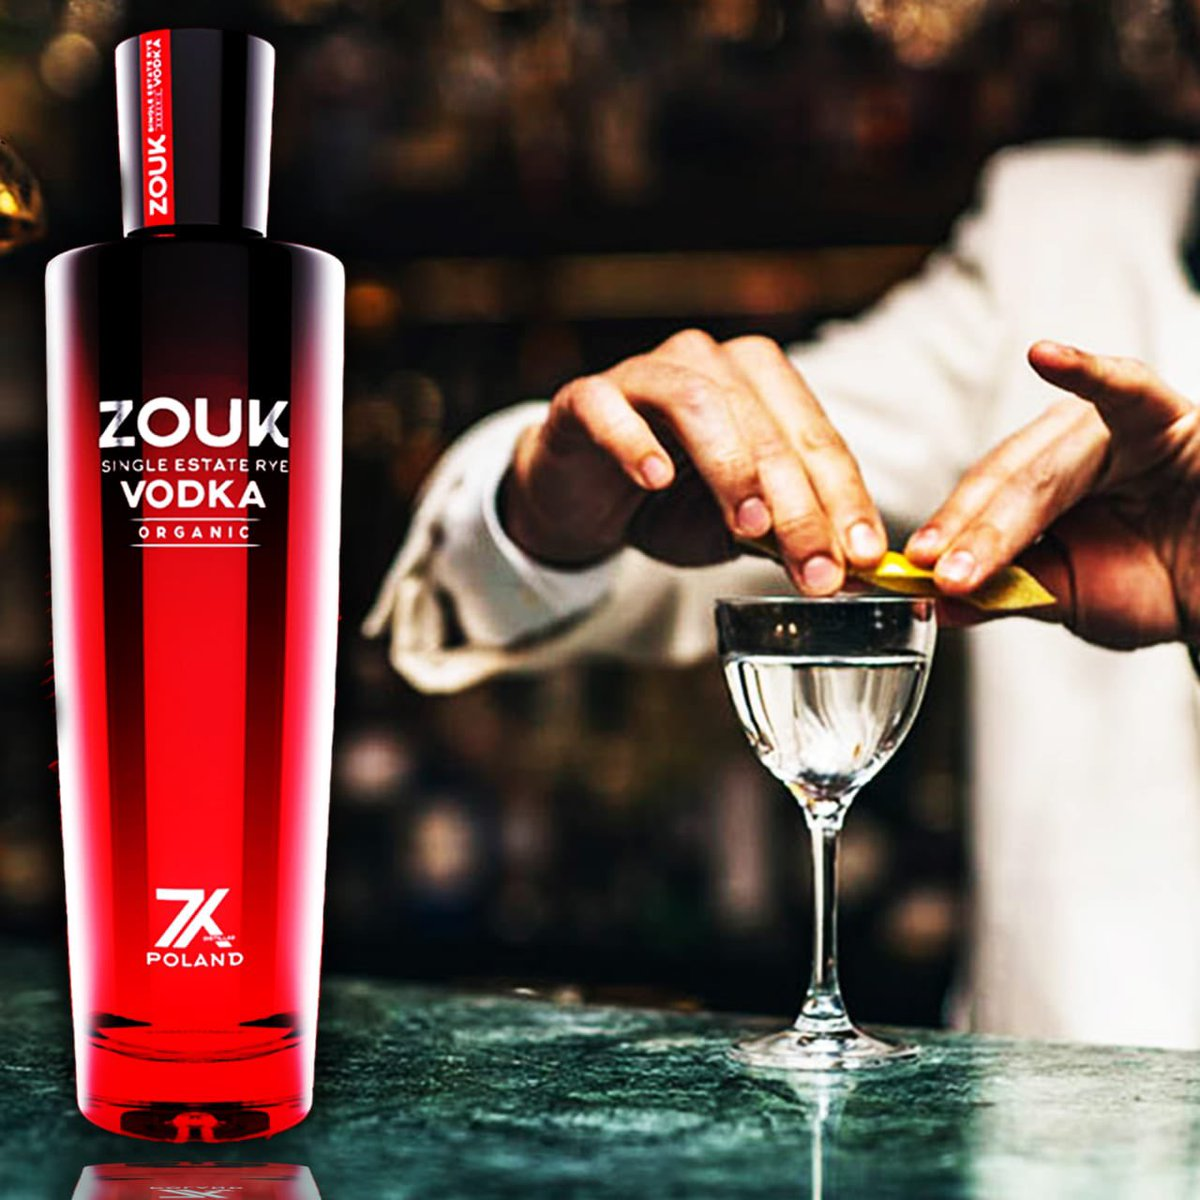 ZoukVodka ✅ Surely you need one for your Monday Blues  #mondayvibes #mondaymood #vodka #mondayblues💙 #zoukvodka